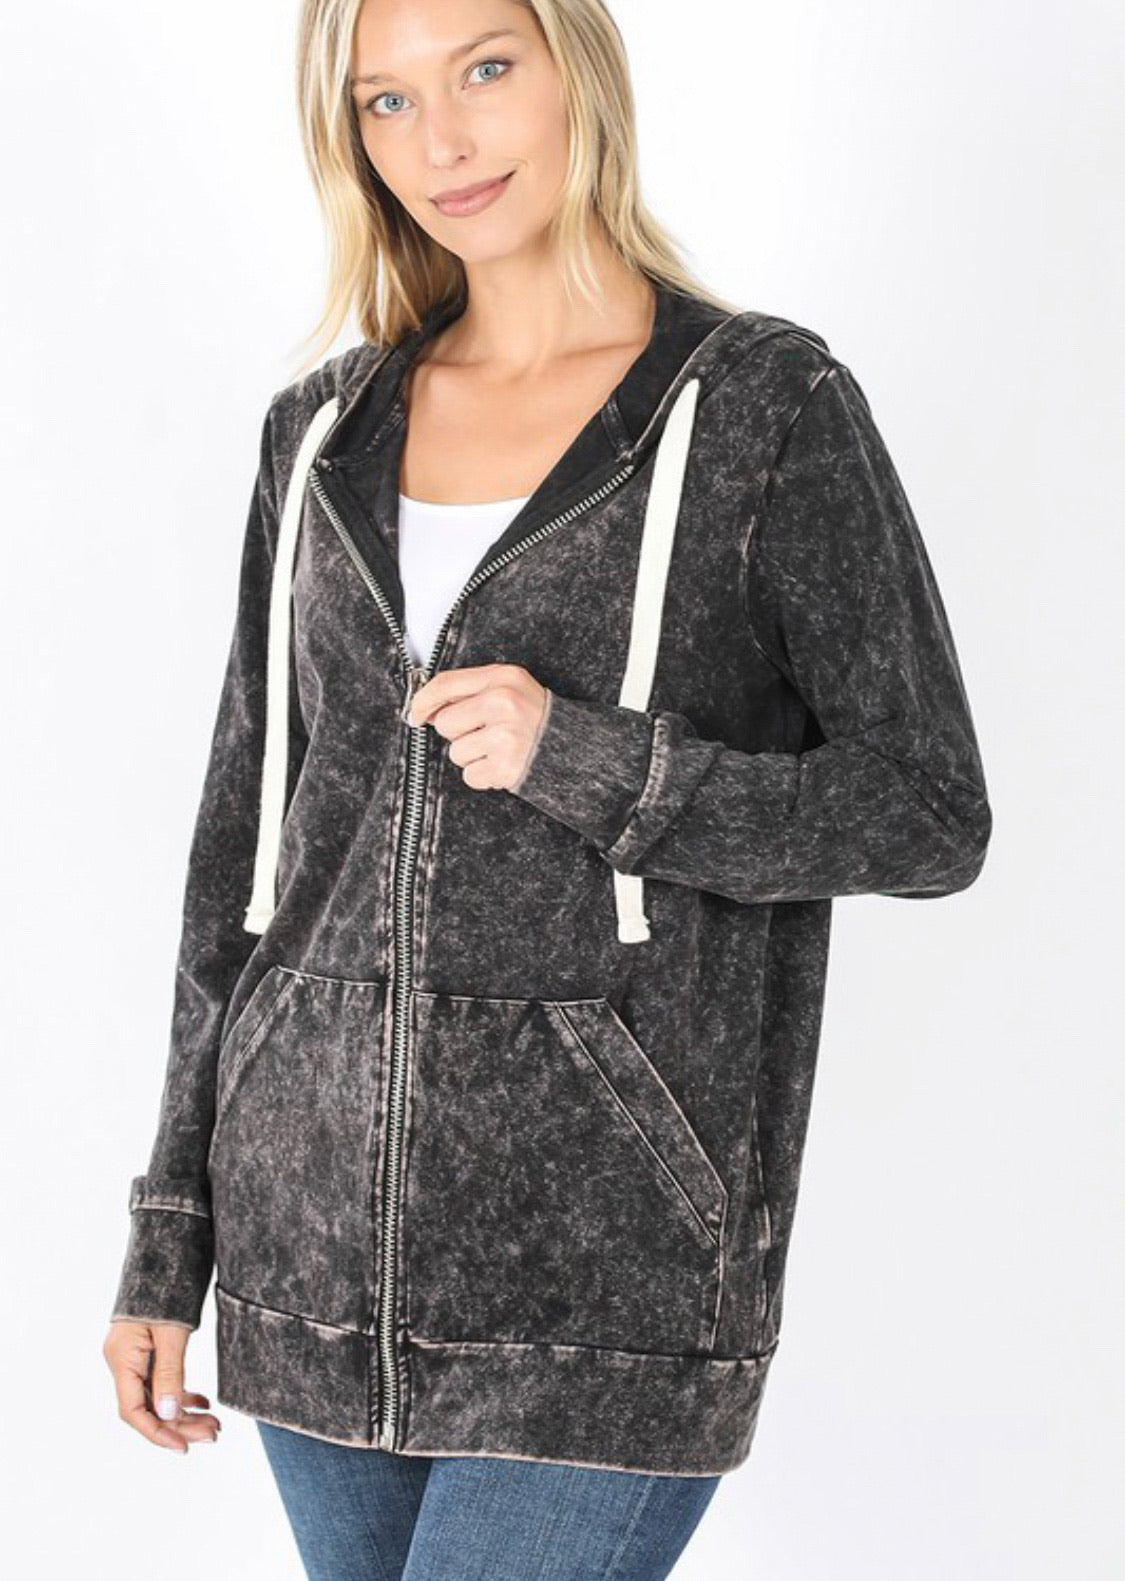 Charcoal Mineral Wash Jacket